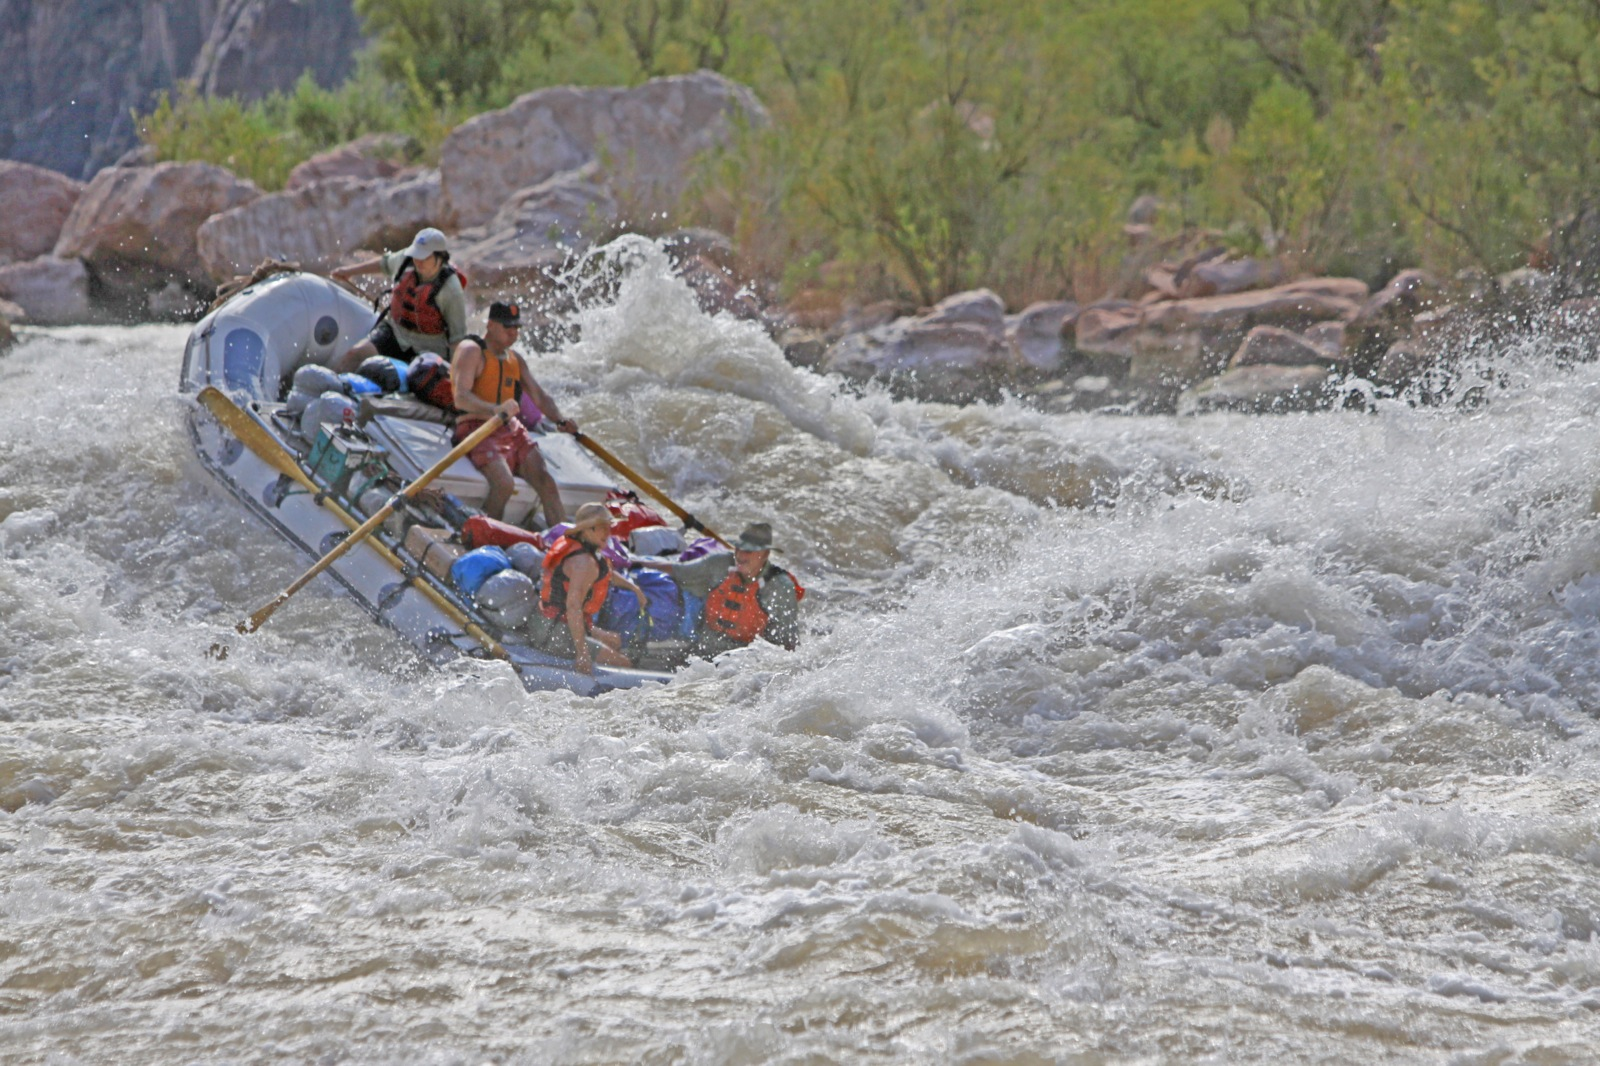 A guide on a gray raft oars through the raging water of Horn Creek rapids on the Colorado River as three participants hold on tight.